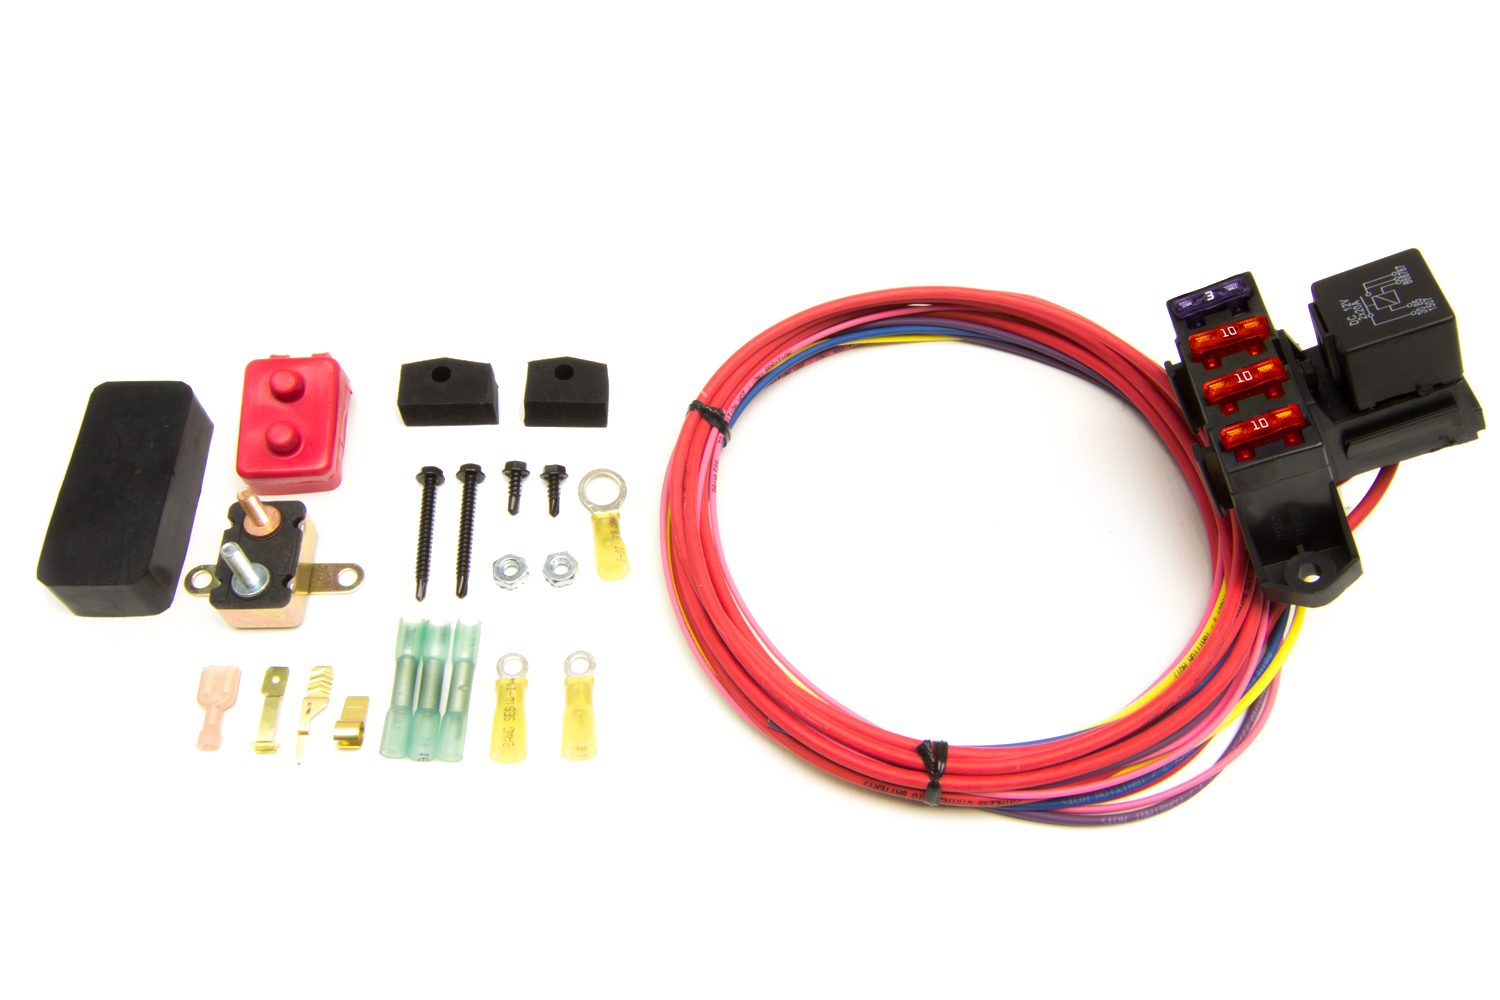 Painless Wiring 70213 Fuse Block, Auxiliary, 3 Circuit, Weather Resistant, Harness / Relay, Universal, Each